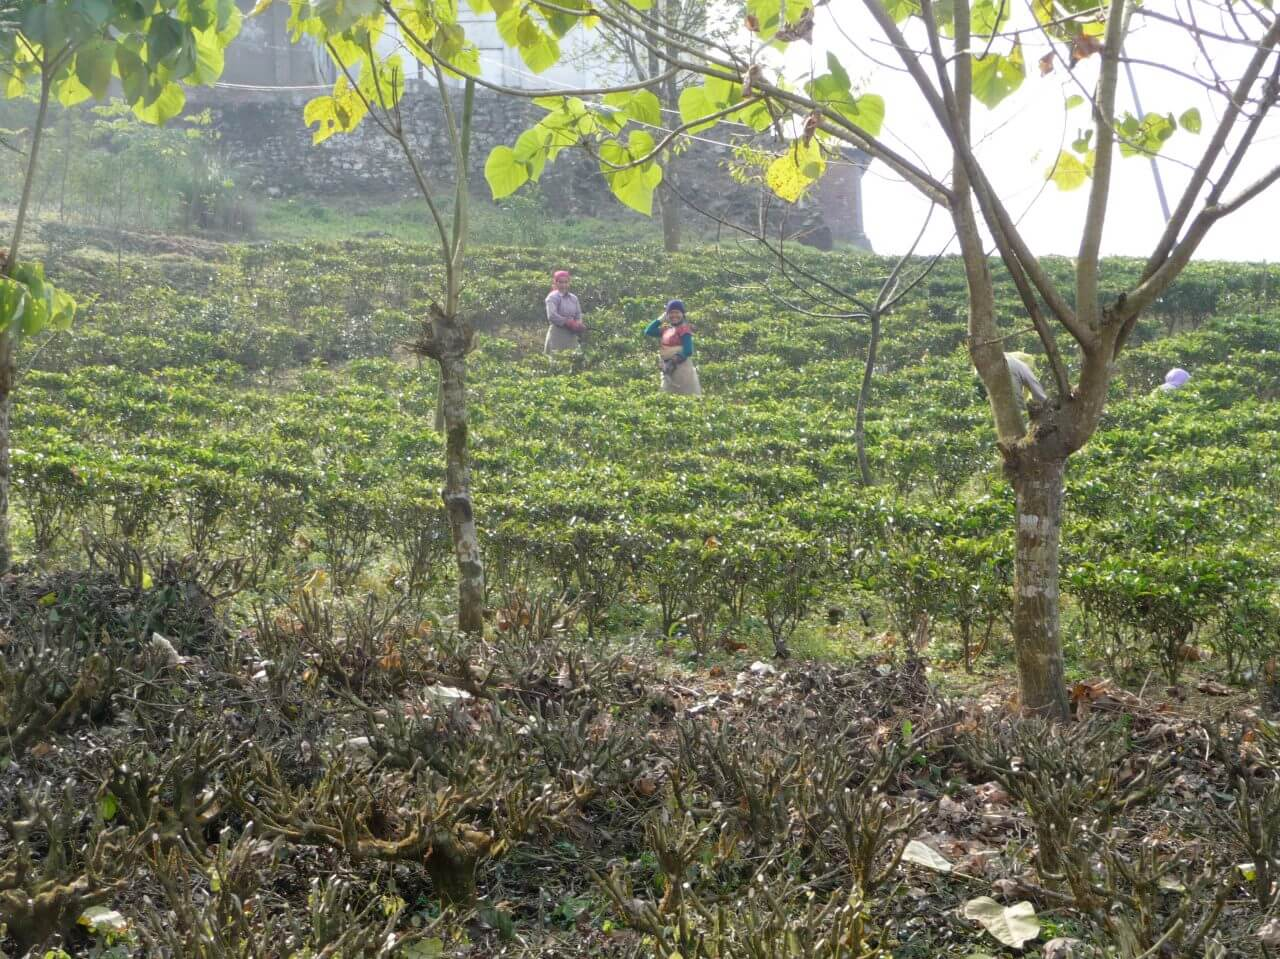 A field of tea bushes with several people picking their leaves.